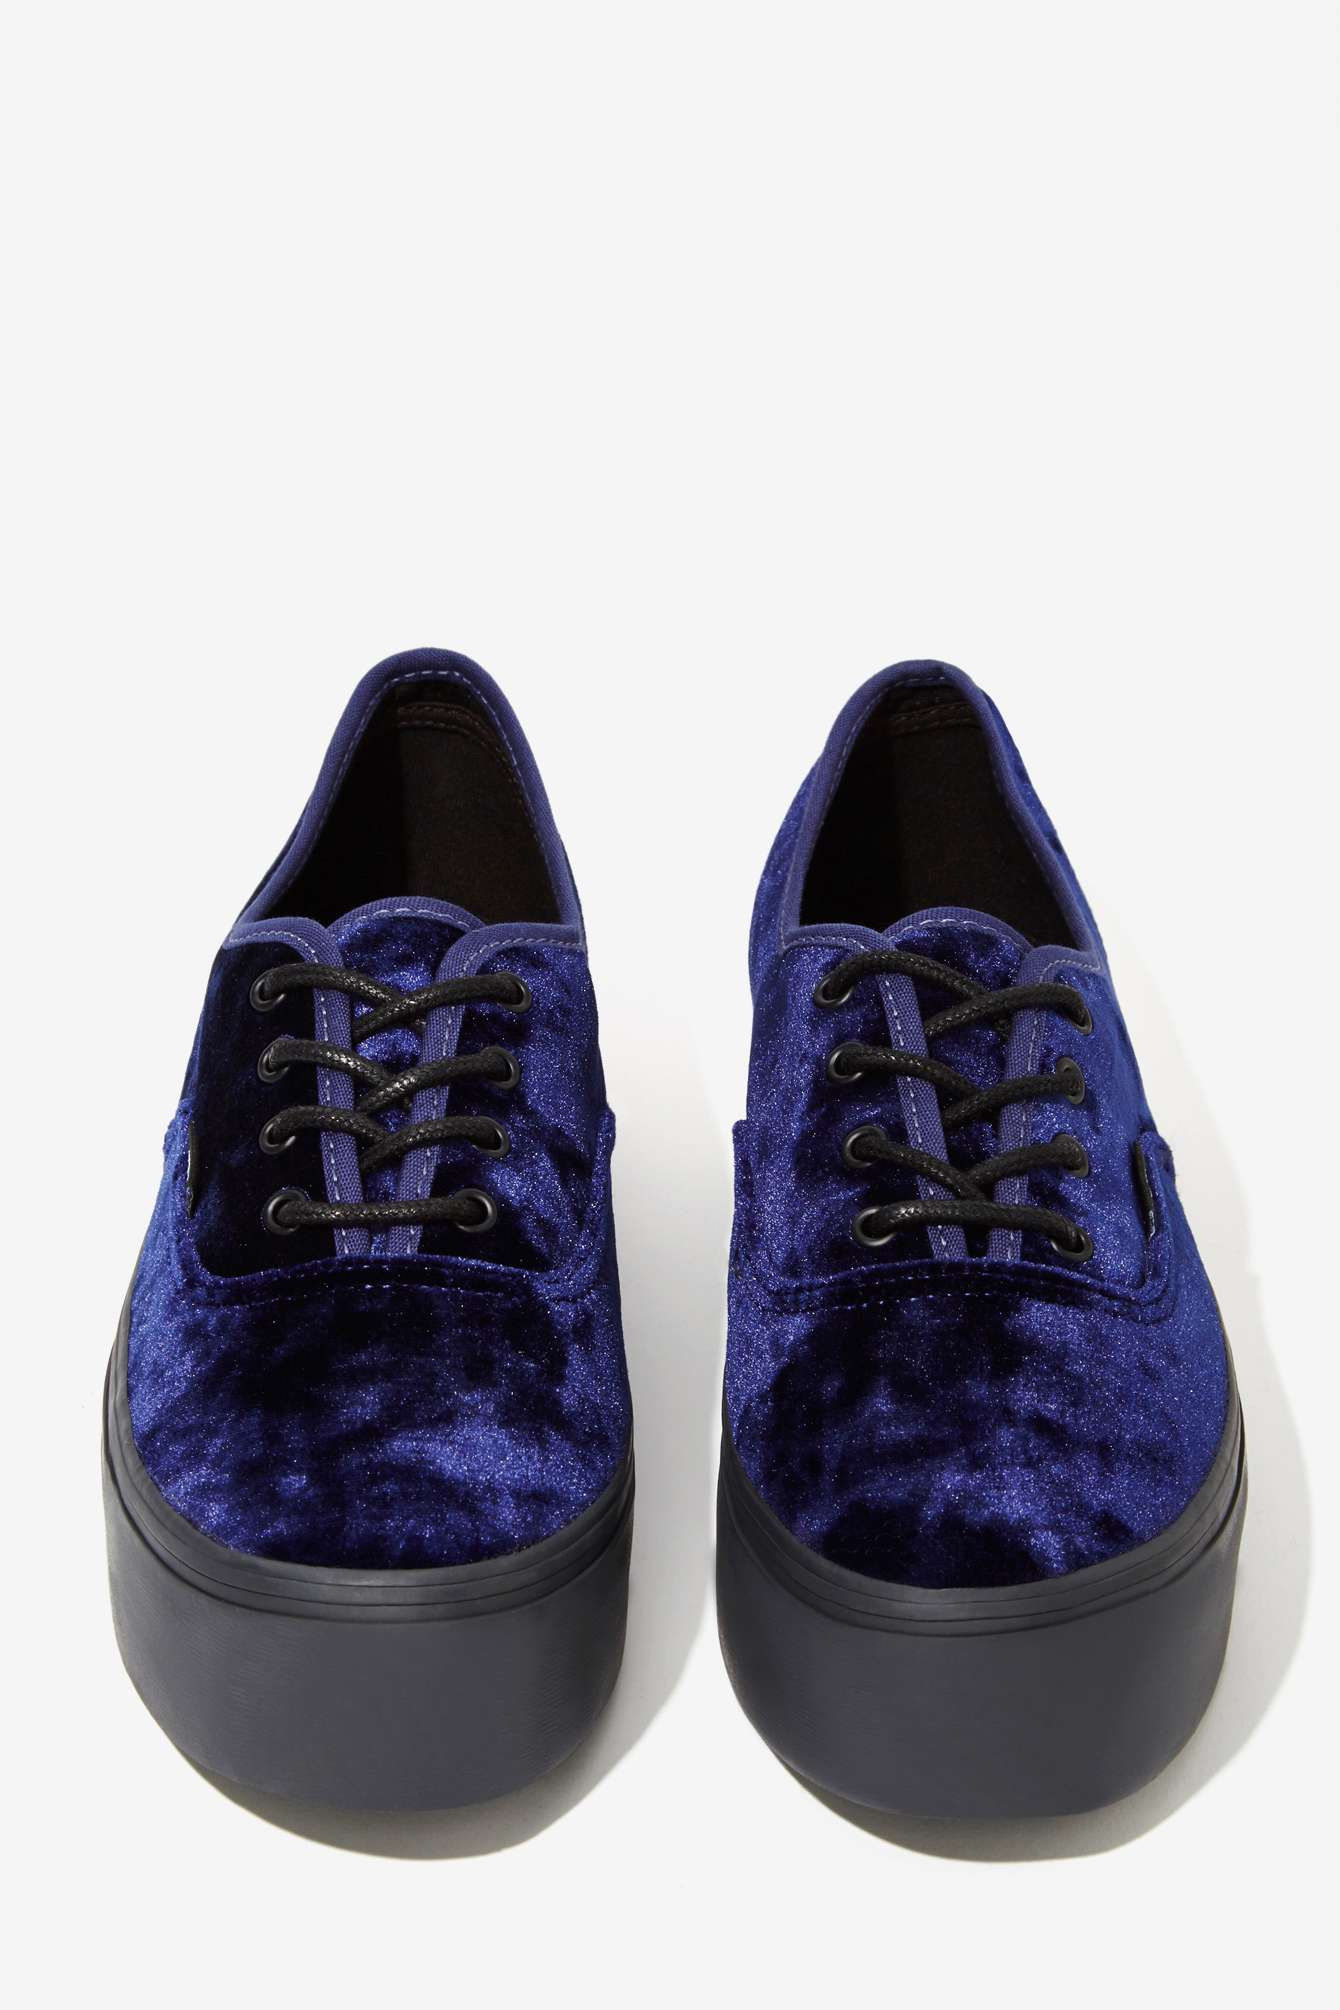 Women S Shoes Blue Velvet Sneakers